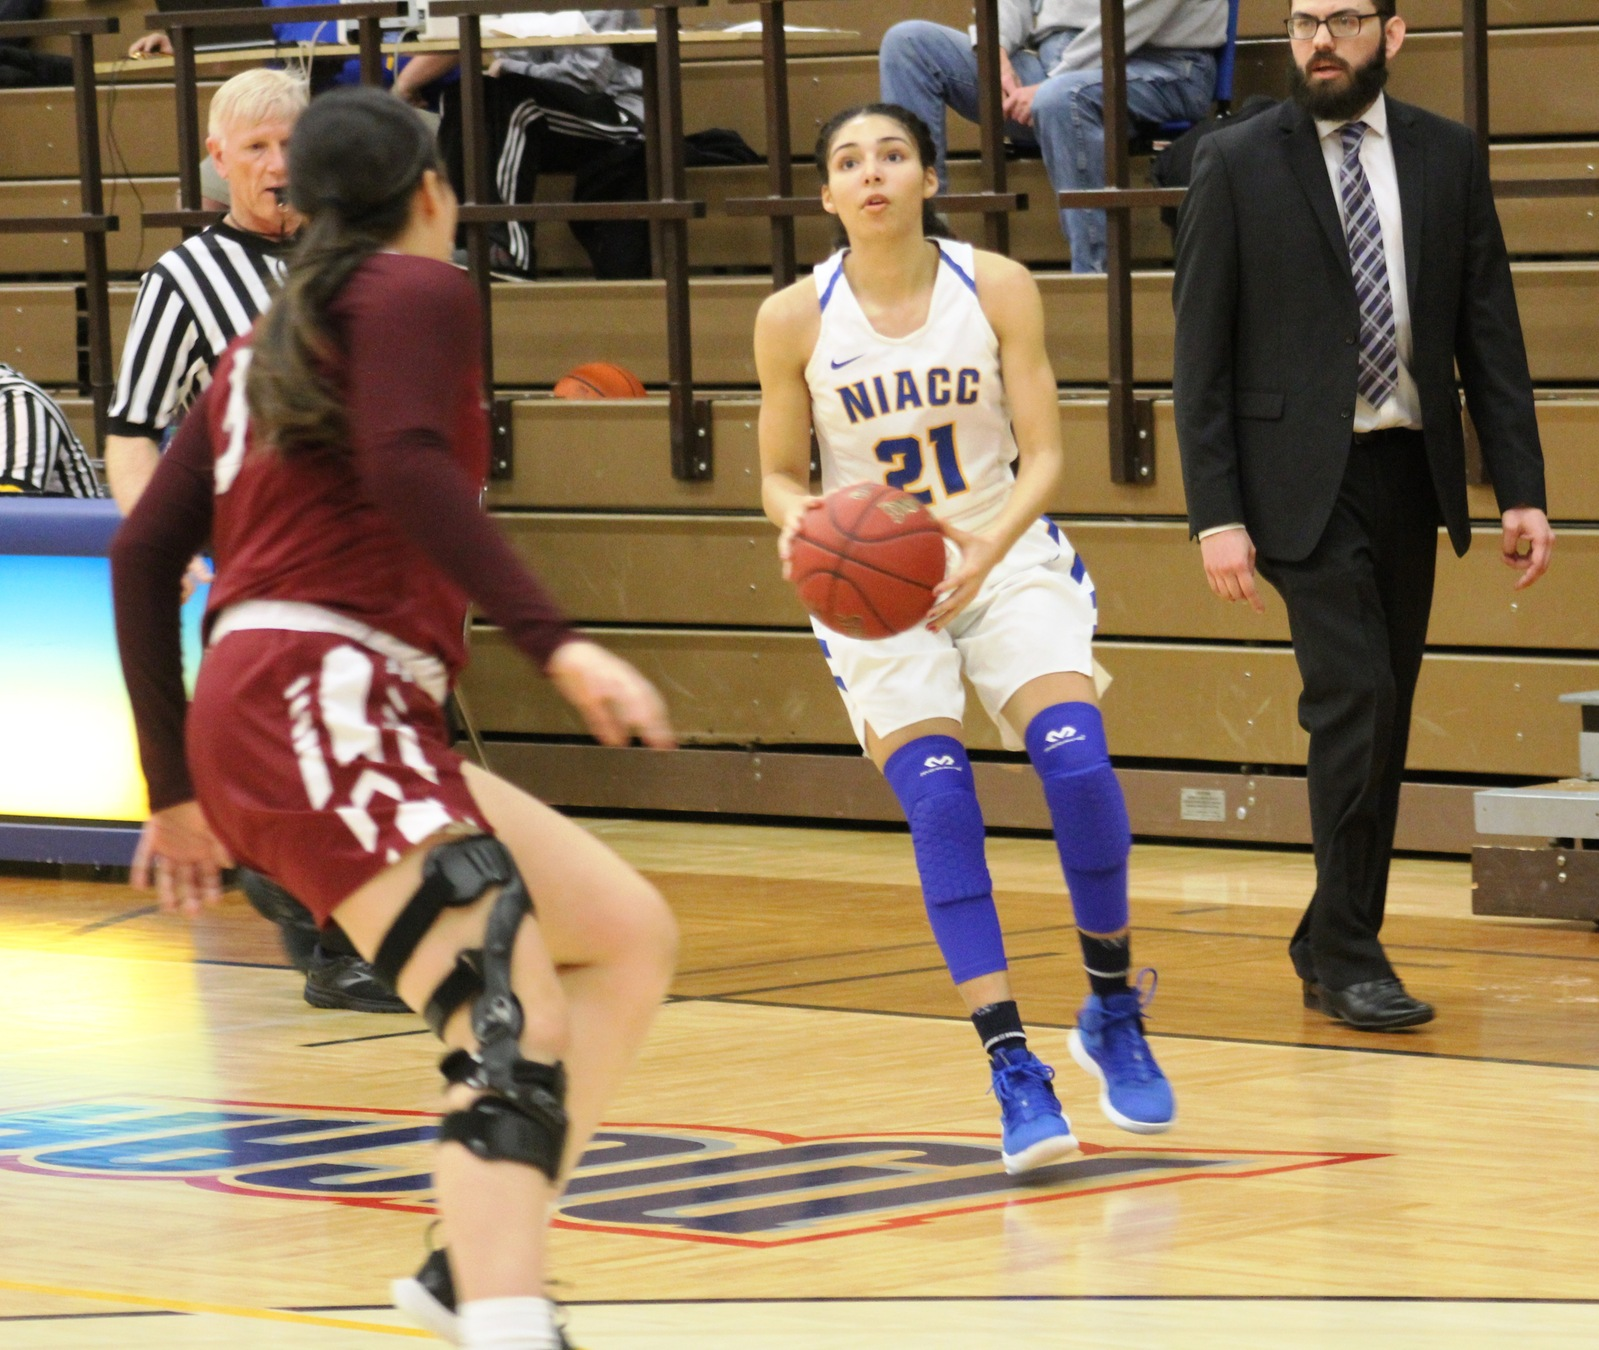 NIACC's Jada Buford gets ready to launch a 3-point goal in Wednesday's win over Little Priest Tribal College.